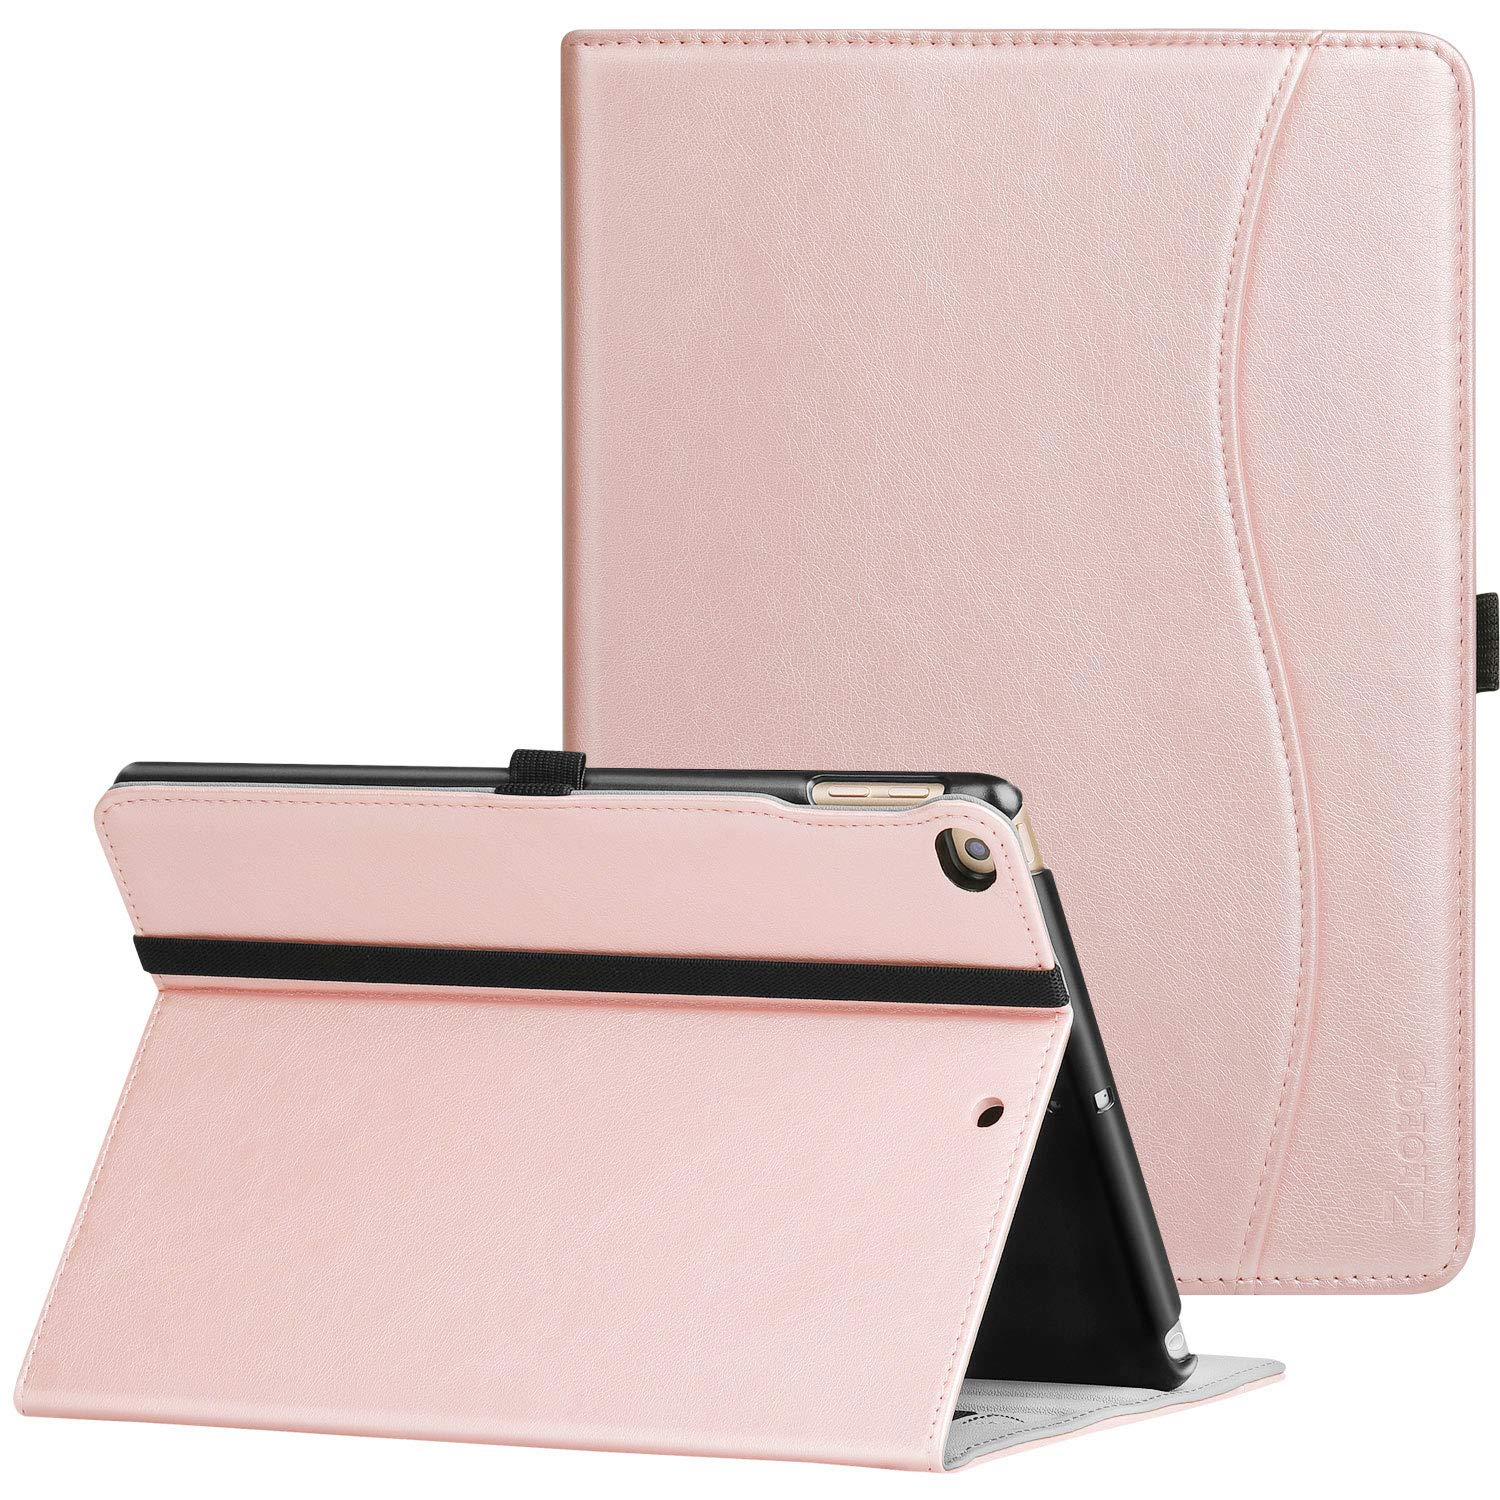 Ztotop Compatible with New IPad 9.7 Inch 2018/2017 Case,Premium Leather Business Slim Folding Stand Folio Cover with Auto Wake/Sleep,Pencil Holder and Multiple Viewing Angles,Rose Gold